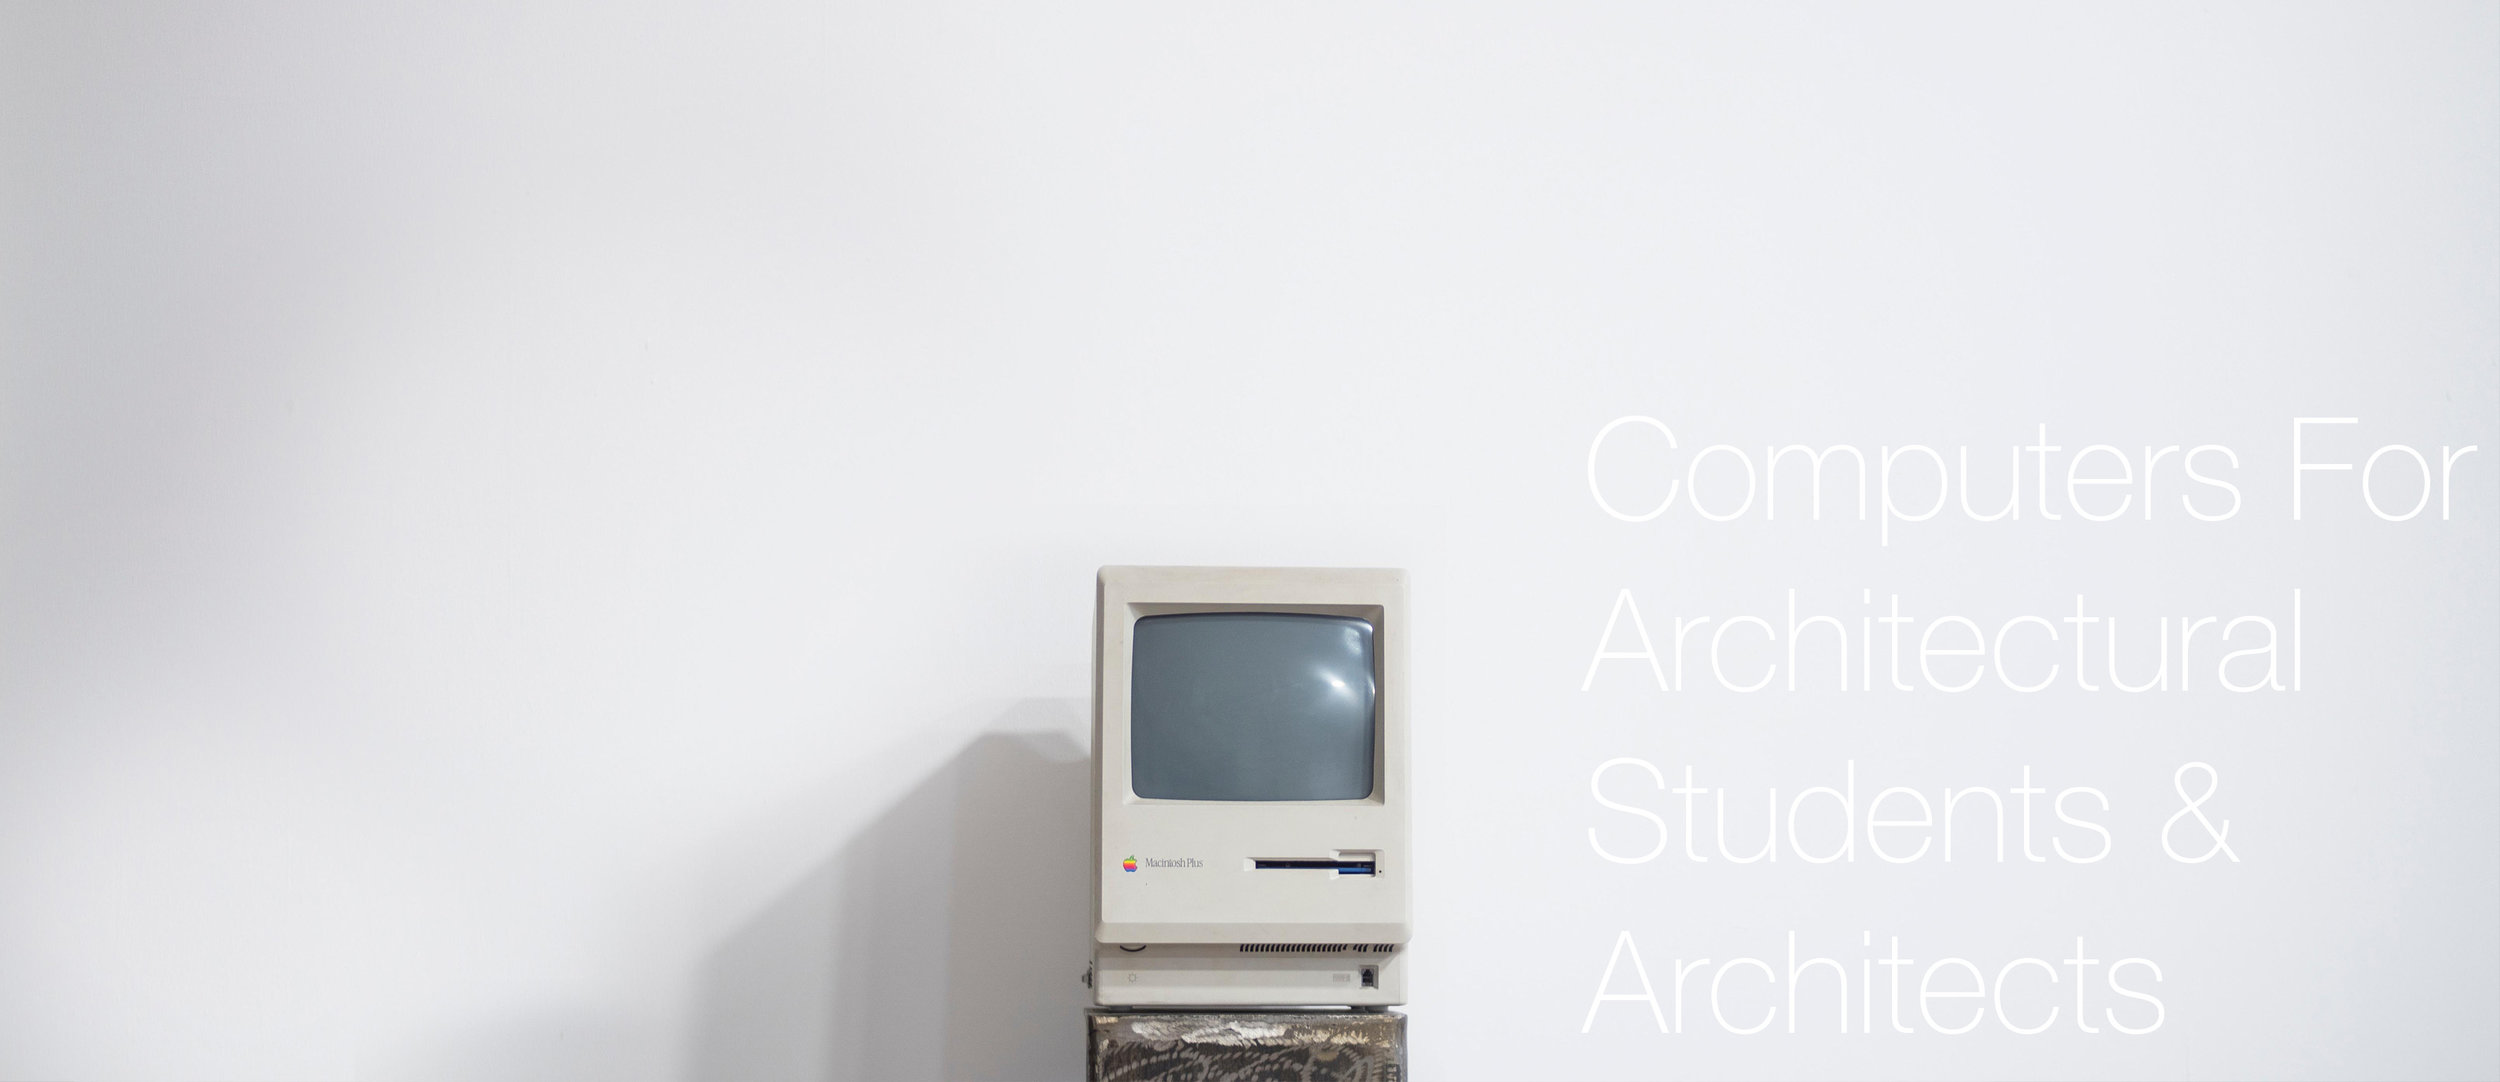 Best-Computers For Architectural Students & Architects.jpg